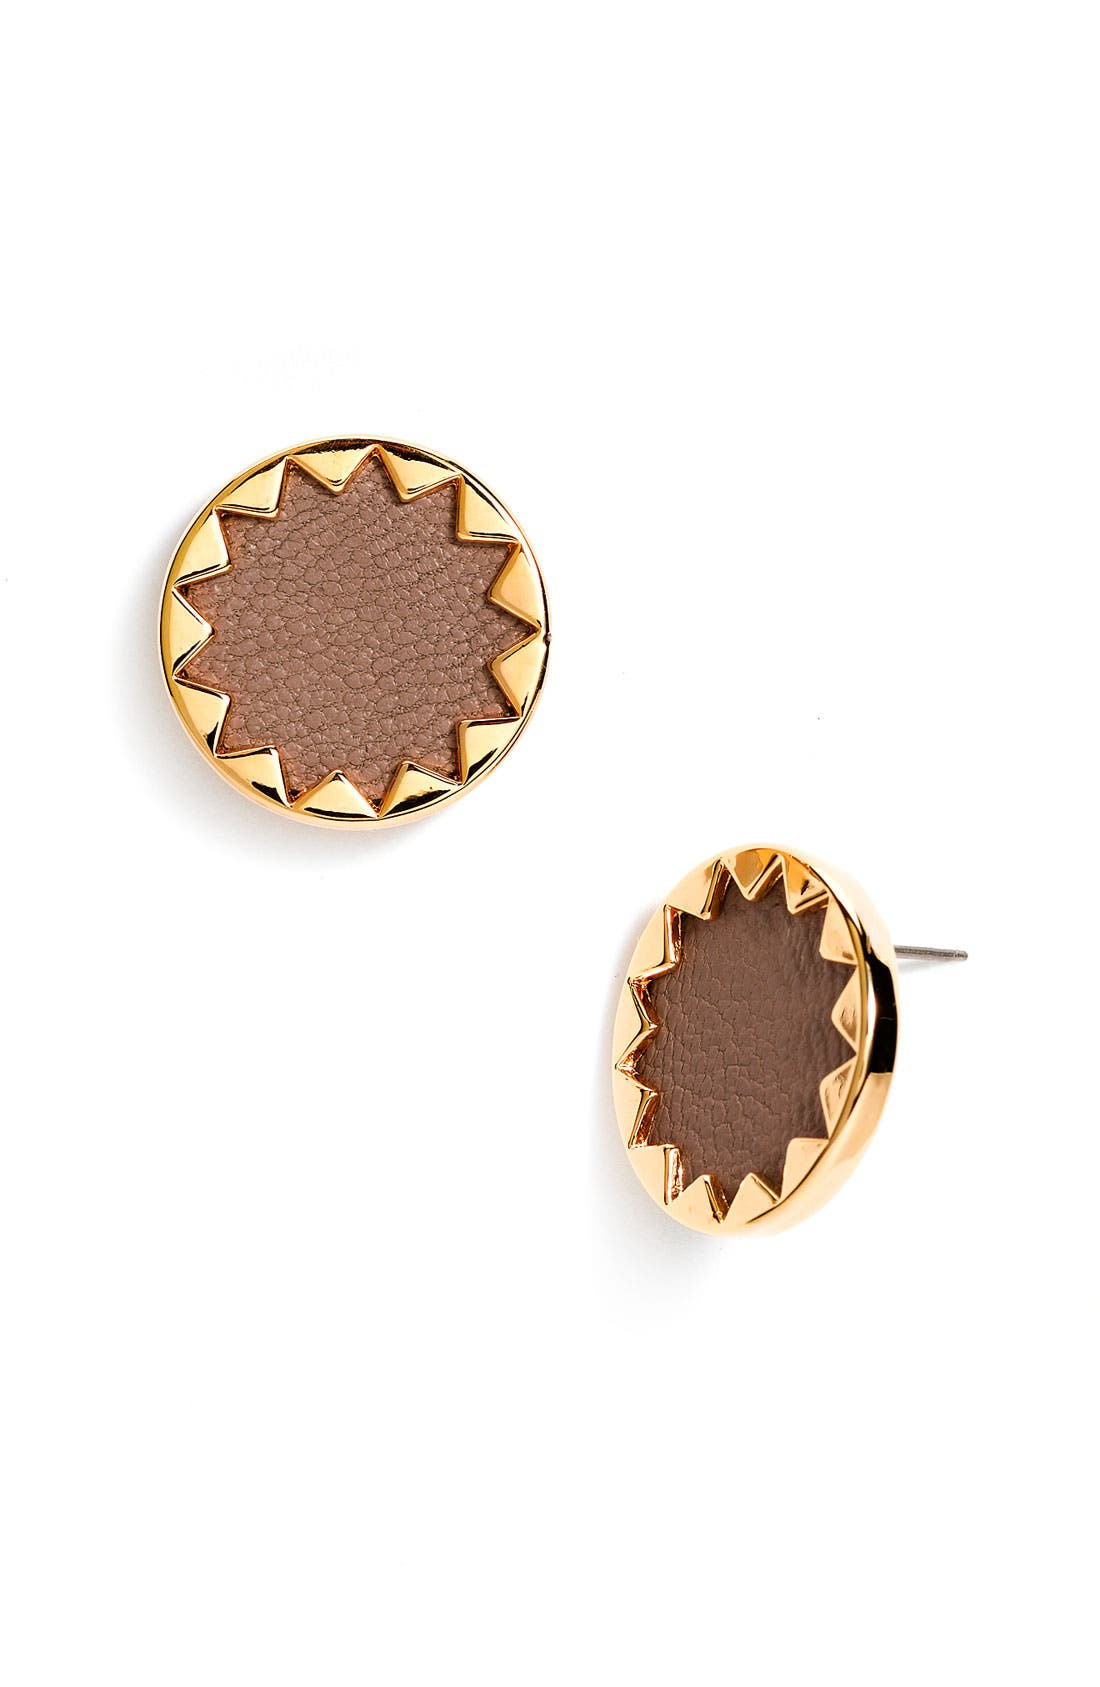 Main Image - House of Harlow 1960 Sunburst Button Earrings